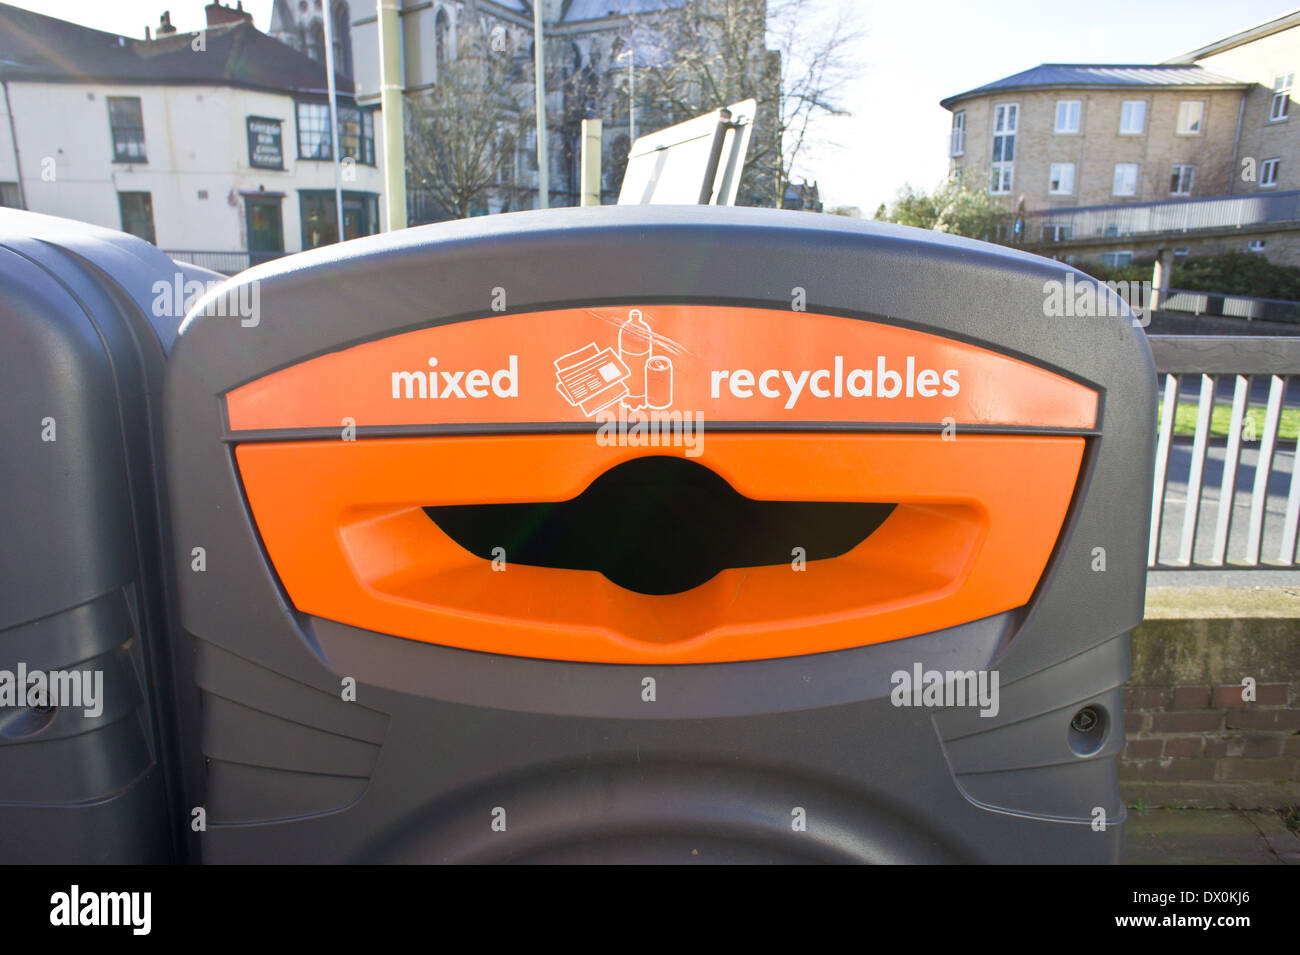 Mixed recycling bin in a UK town centre Stock Photo